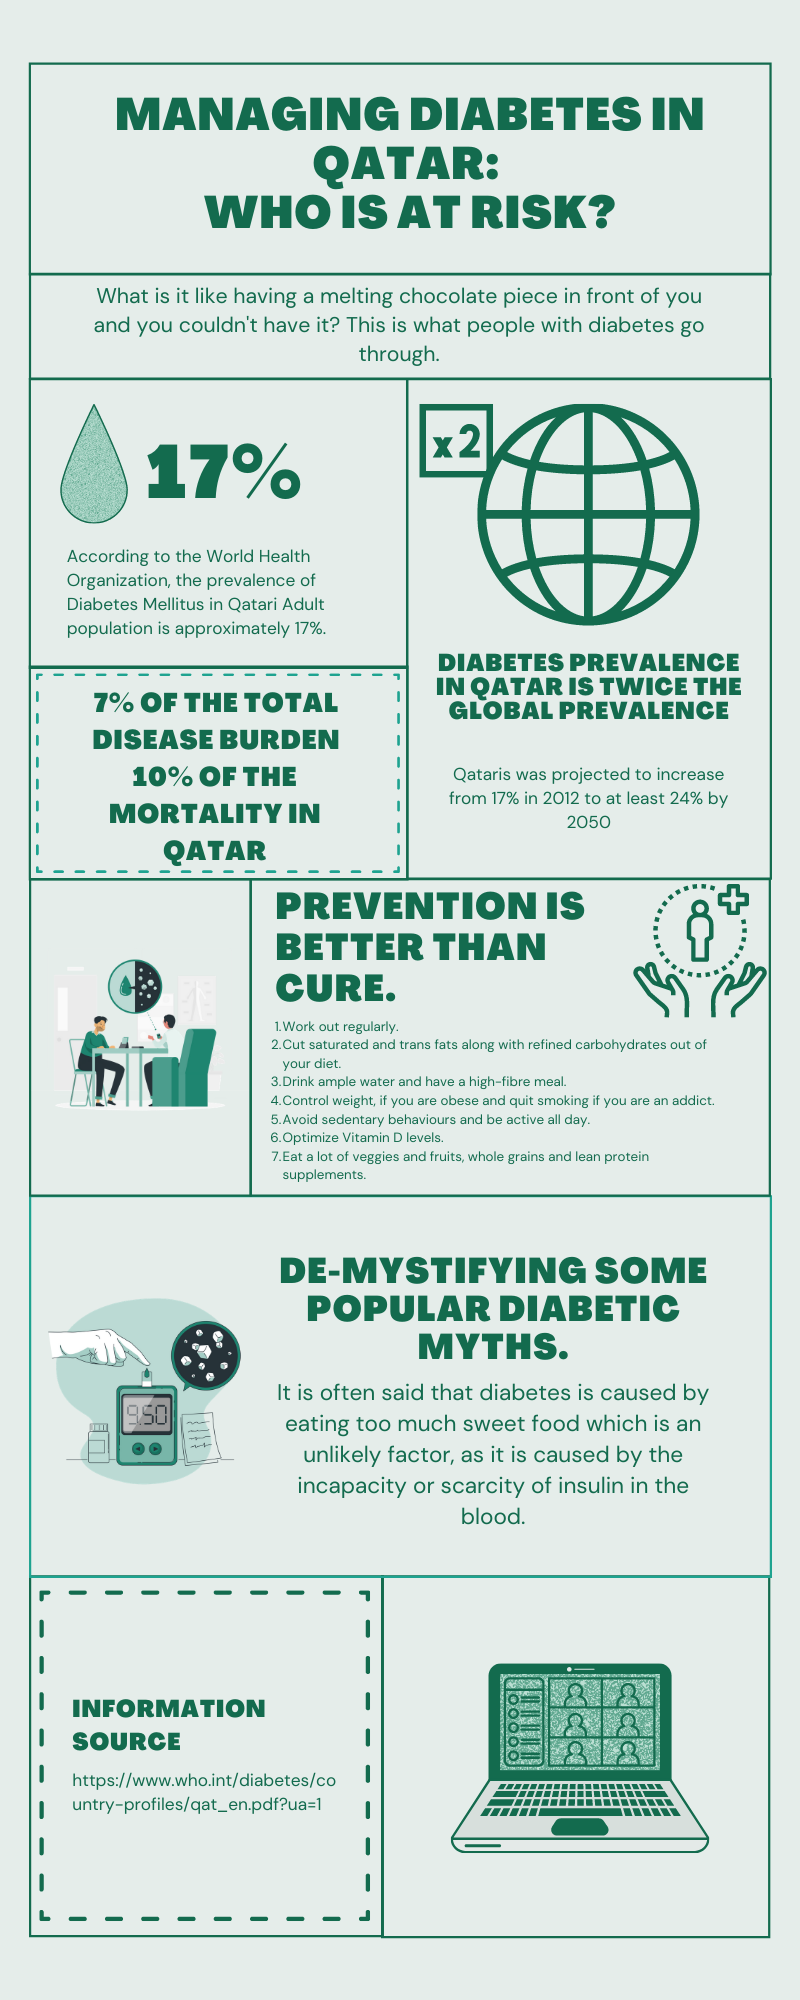 diabetes, sugar, type, diabetes mellitus, type 2 diabetes, diabetes symptoms, endocrinology, atherosclerosis, symptoms of diabetes, diabetes type 2, causes